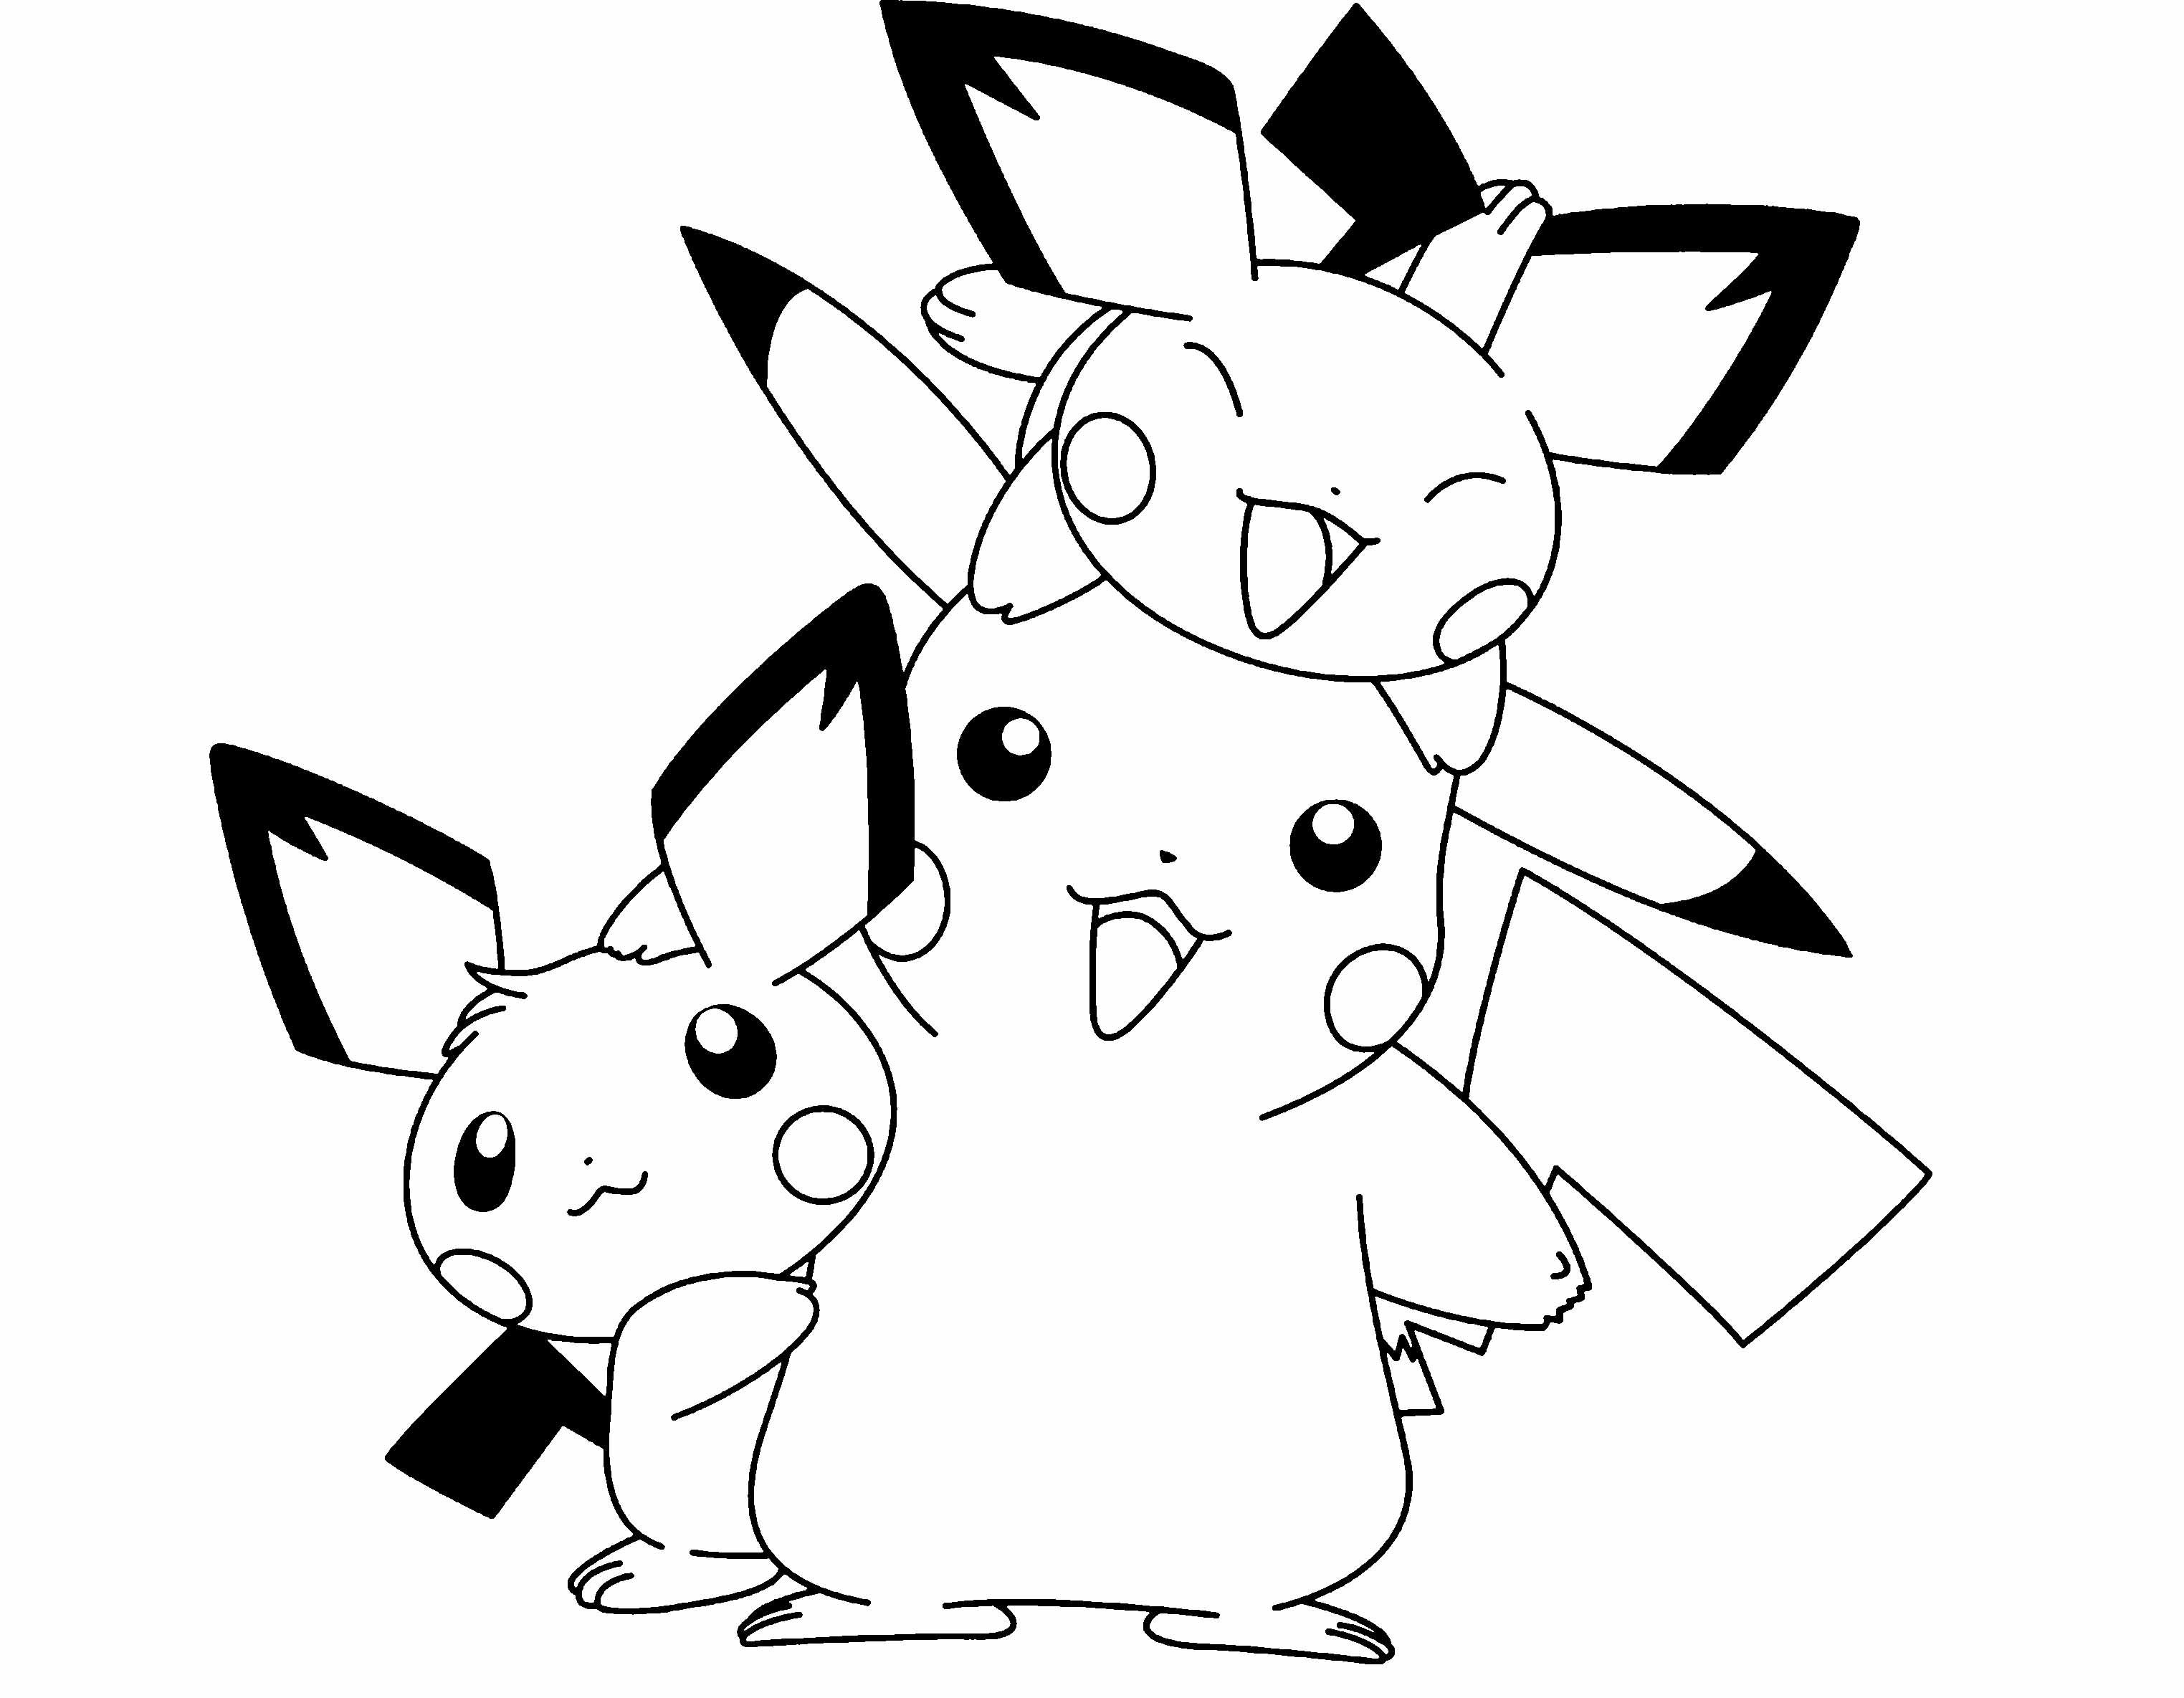 pikachu cute pokemon coloring pages cute pokemon coloring pages getcoloringpagescom coloring pages pokemon pikachu cute